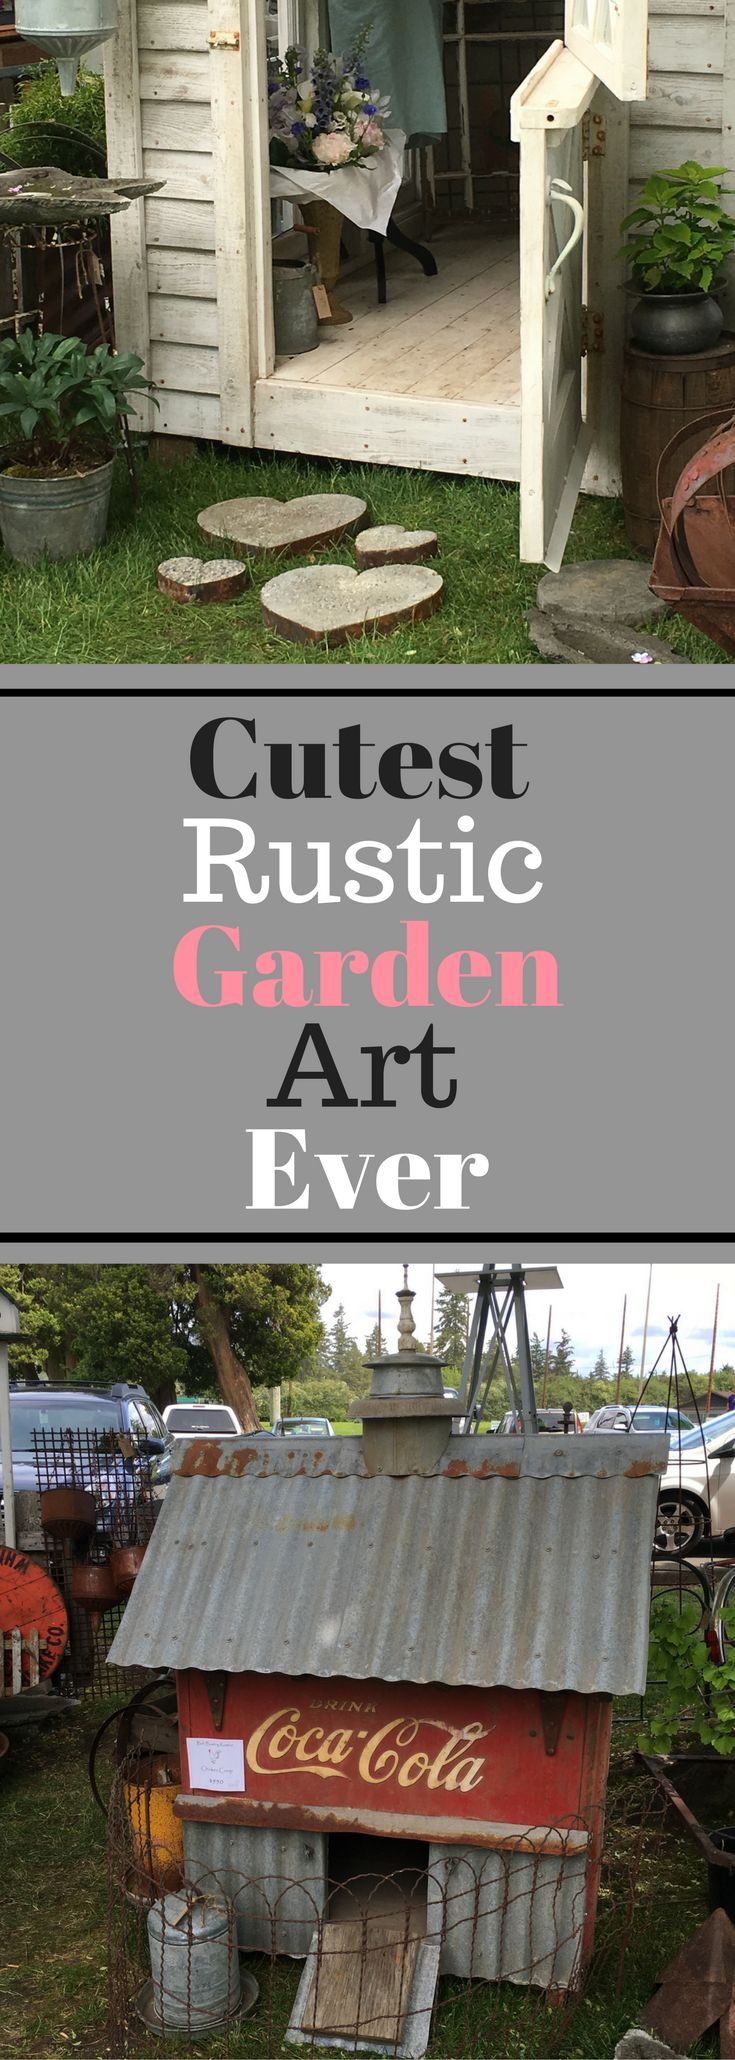 best 25+ rustic garden decor ideas on pinterest | rustic